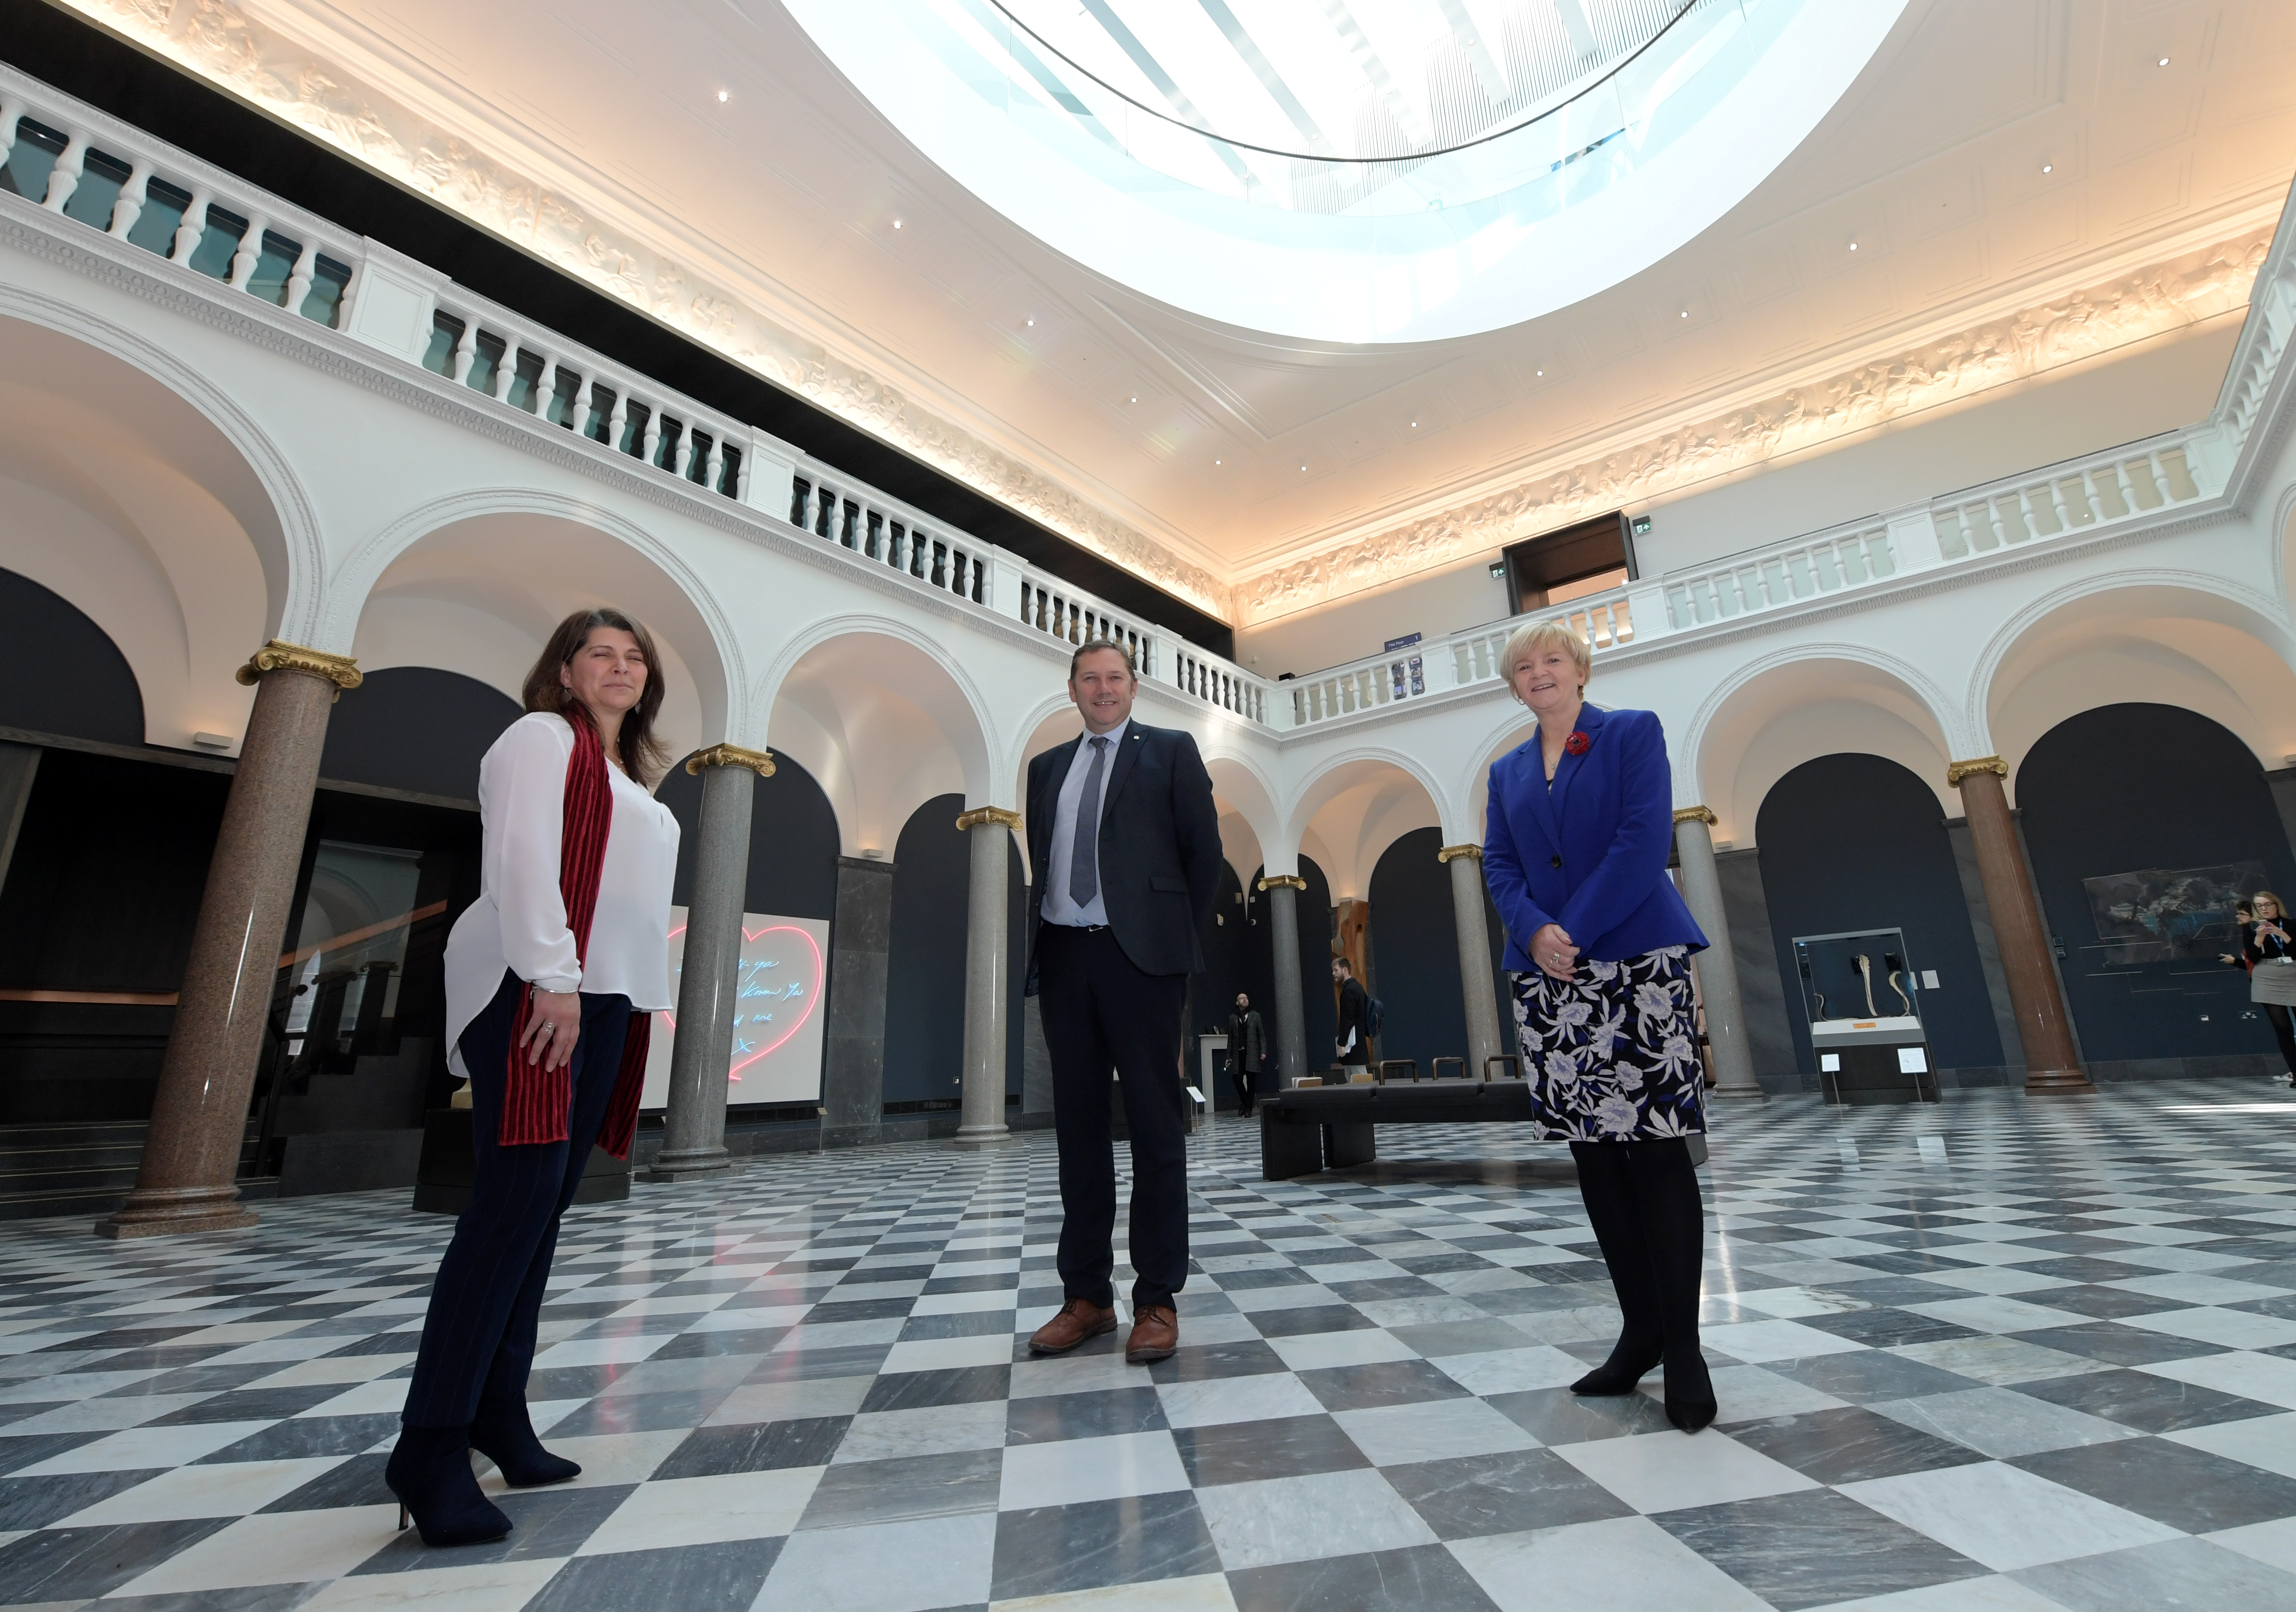 Culture spokesperson Marie Boulton with Aberdeen City Council Co-Leaders Douglas Lumsden and Jenny Laing in the redeveloped Aberdeen Art Gallery.